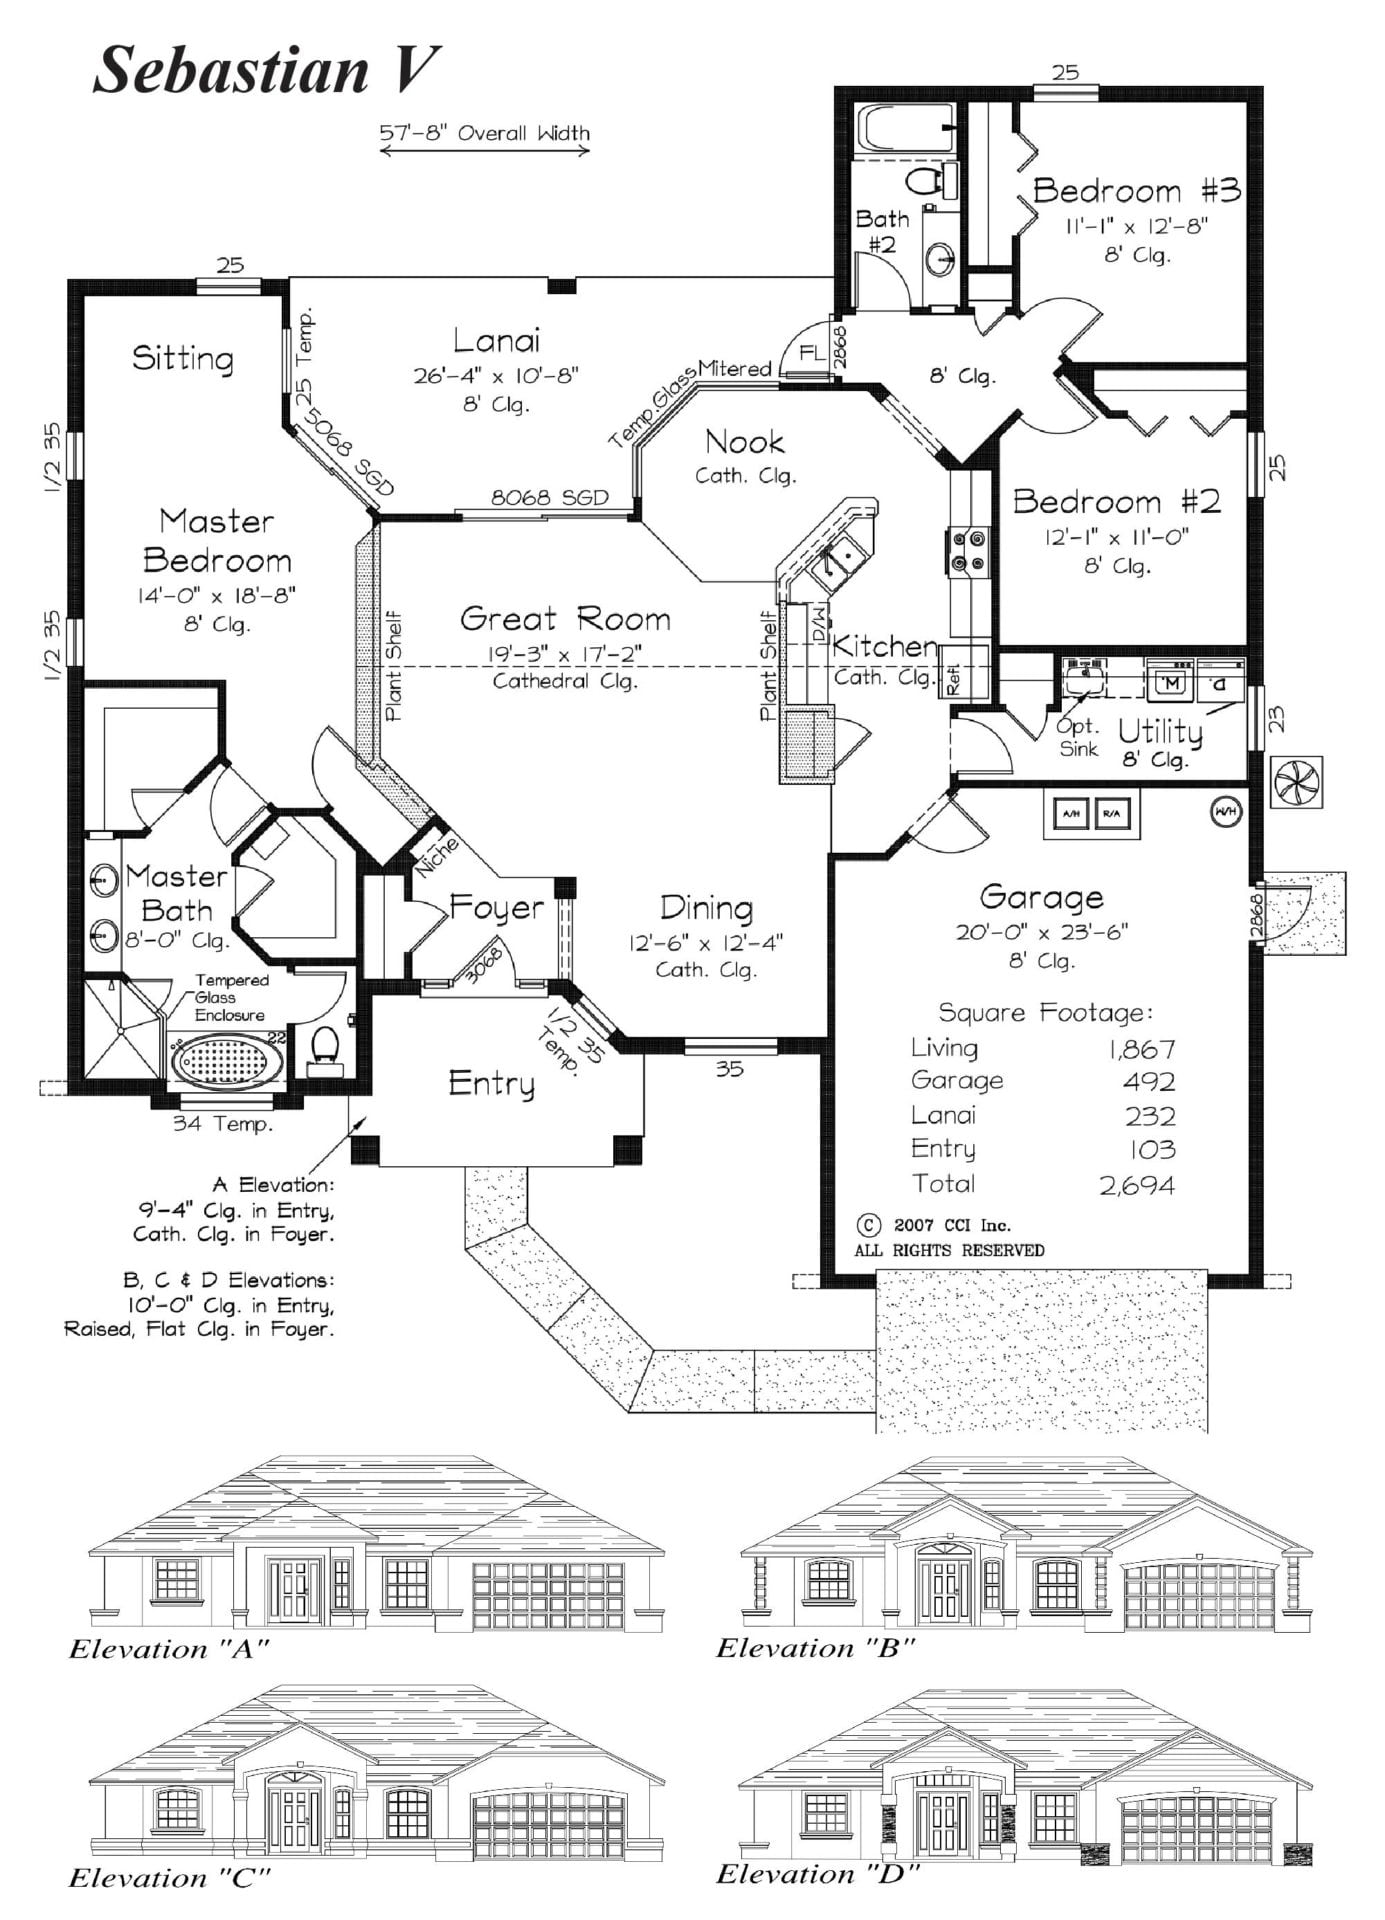 Sebastion V - Floor Plan - Curington Homes - Ocala Florida Contractor